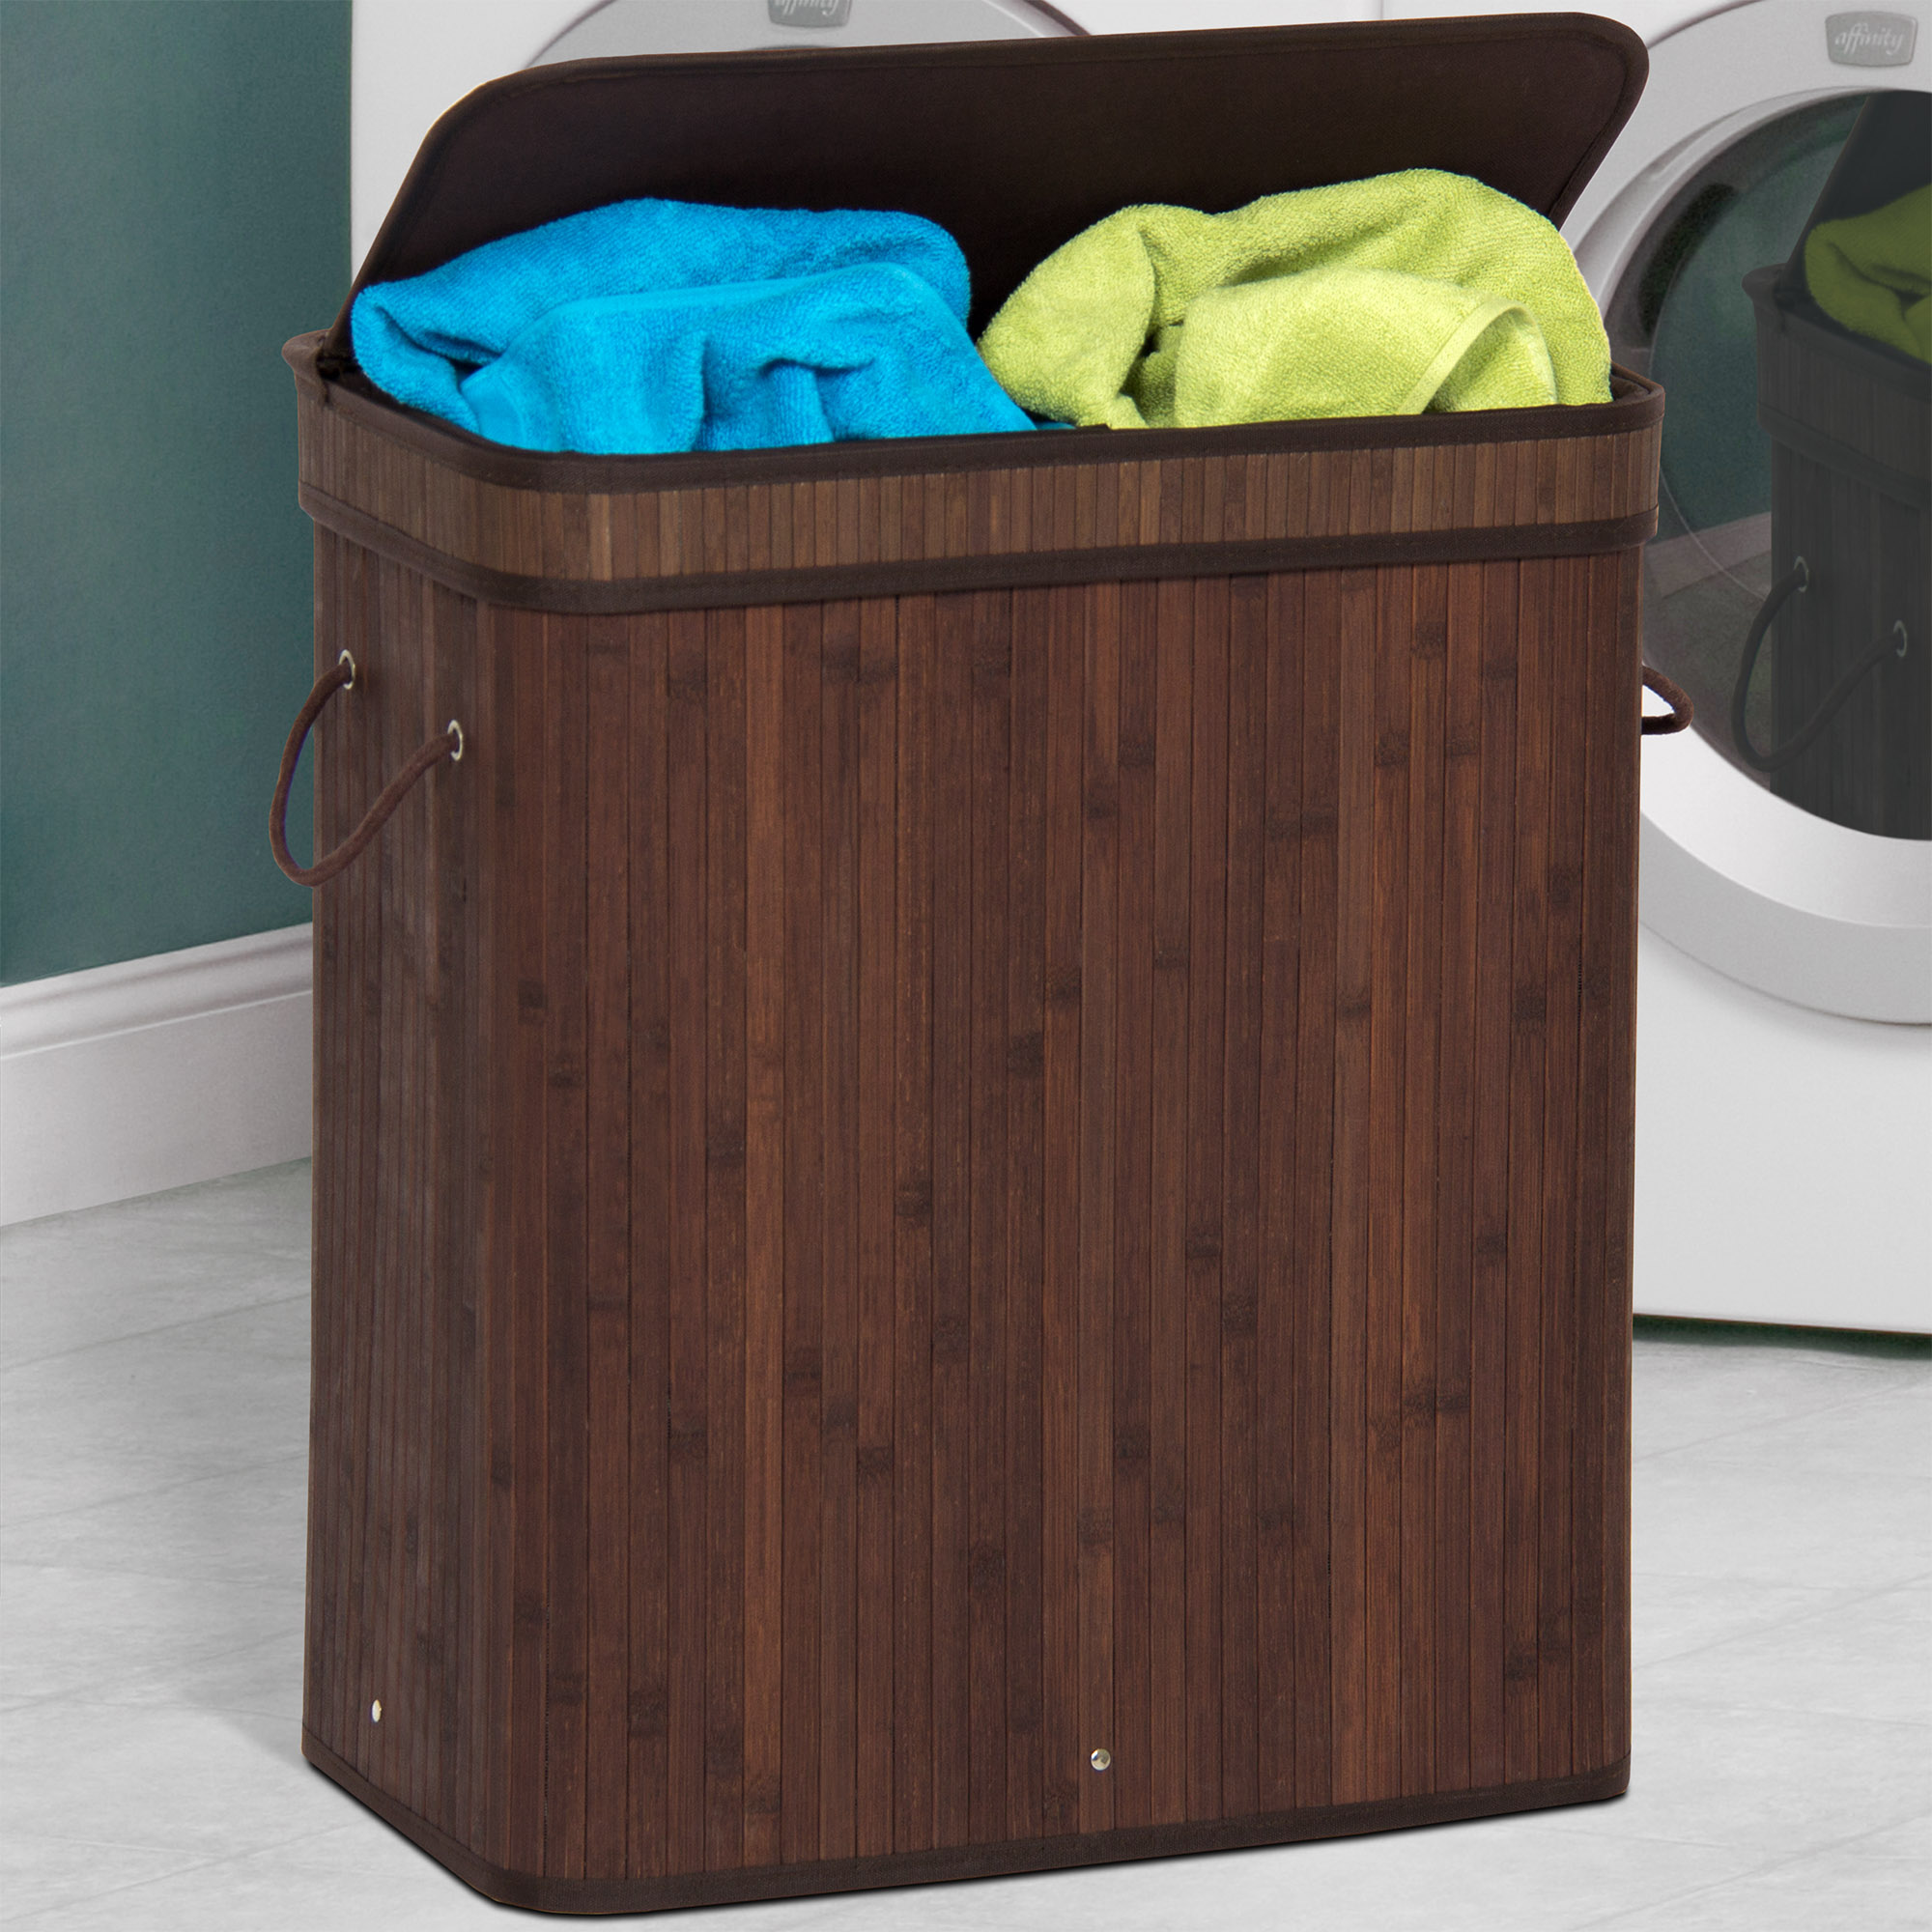 Best Choice Products Foldable Double Section Bamboo Hamper Laundry Basket w/ Removable Liner Bag - Dark Brown